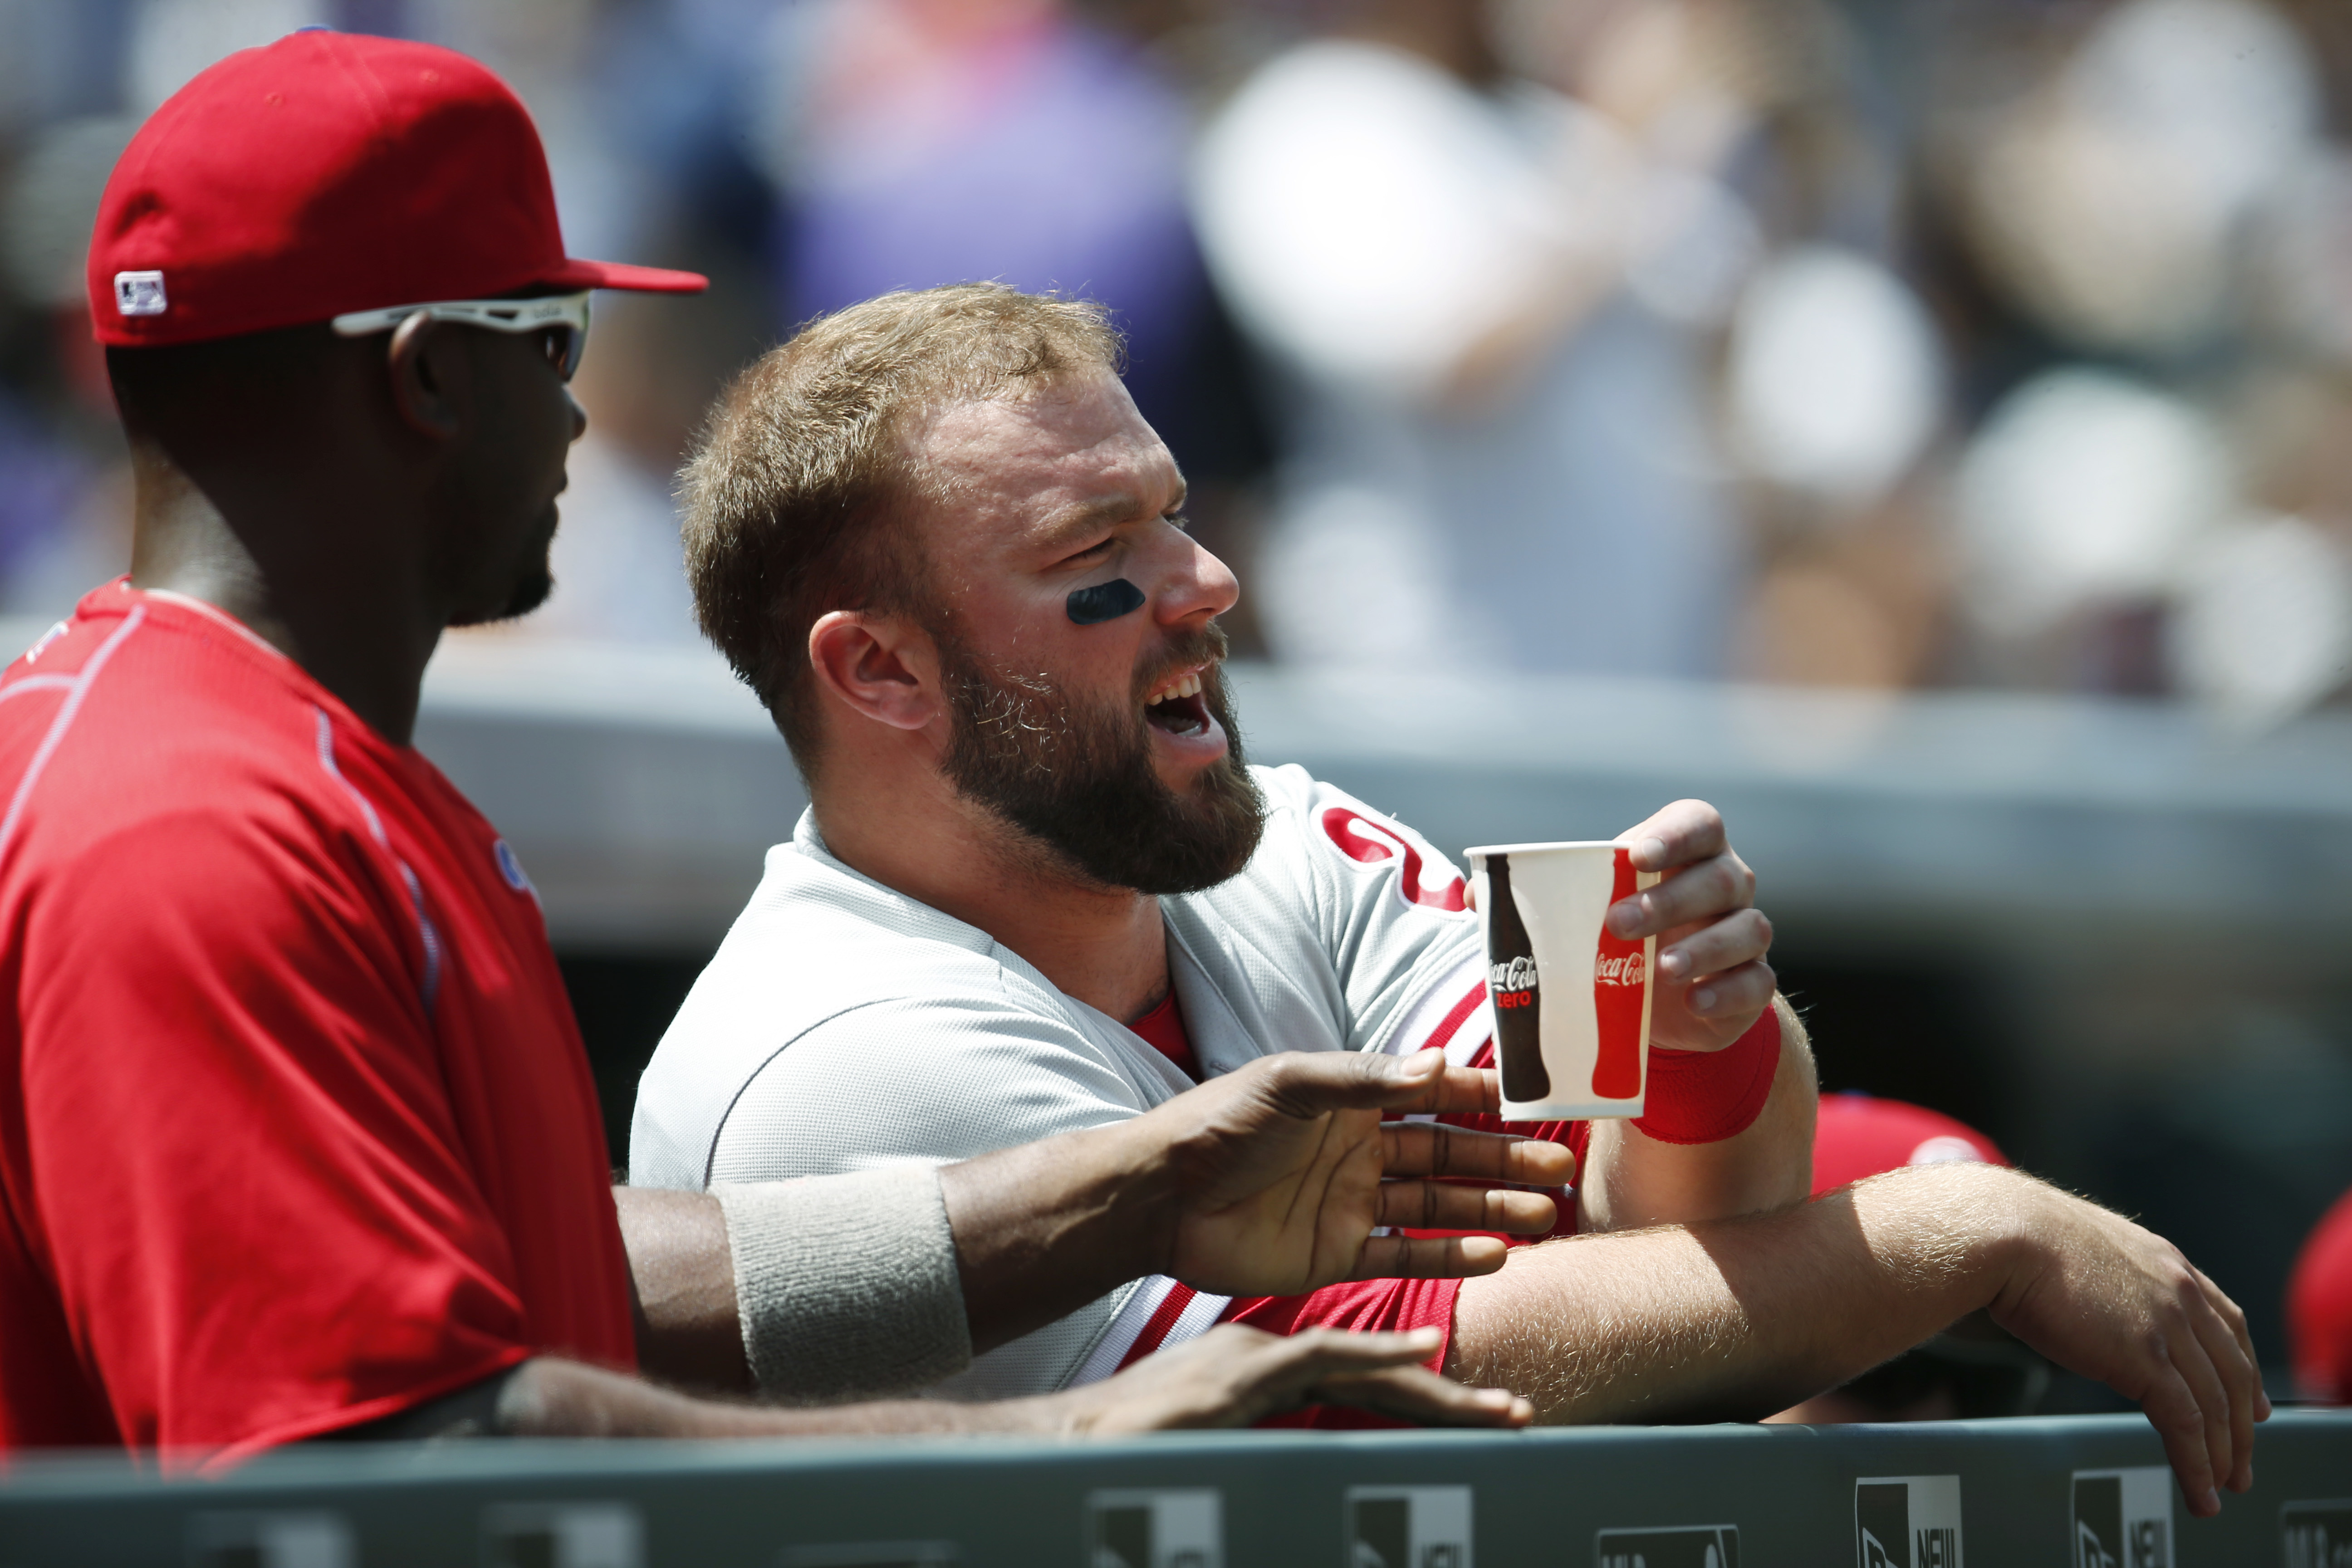 Philadelphia Phillies first baseman Ryan Howard, left, shares a cup of water with catcher Cameron Rupp as they look on against the Colorado Rockies in the first inning of a baseball game Sunday, July 10, 2016, in Denver. High temperatures were in the mid-